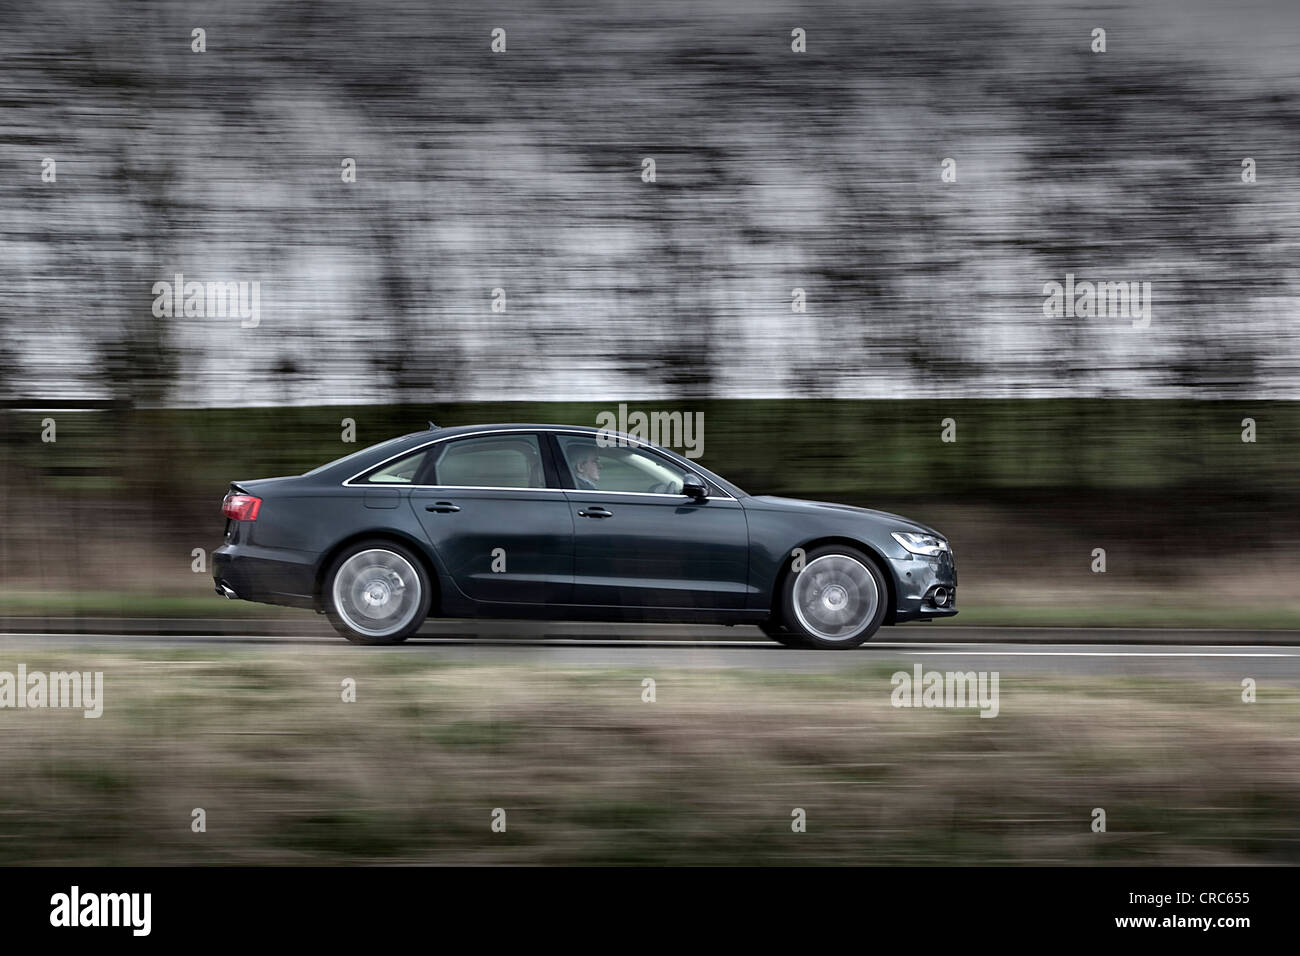 Audi A6 Quattro. driving on a British country road Stock Photo